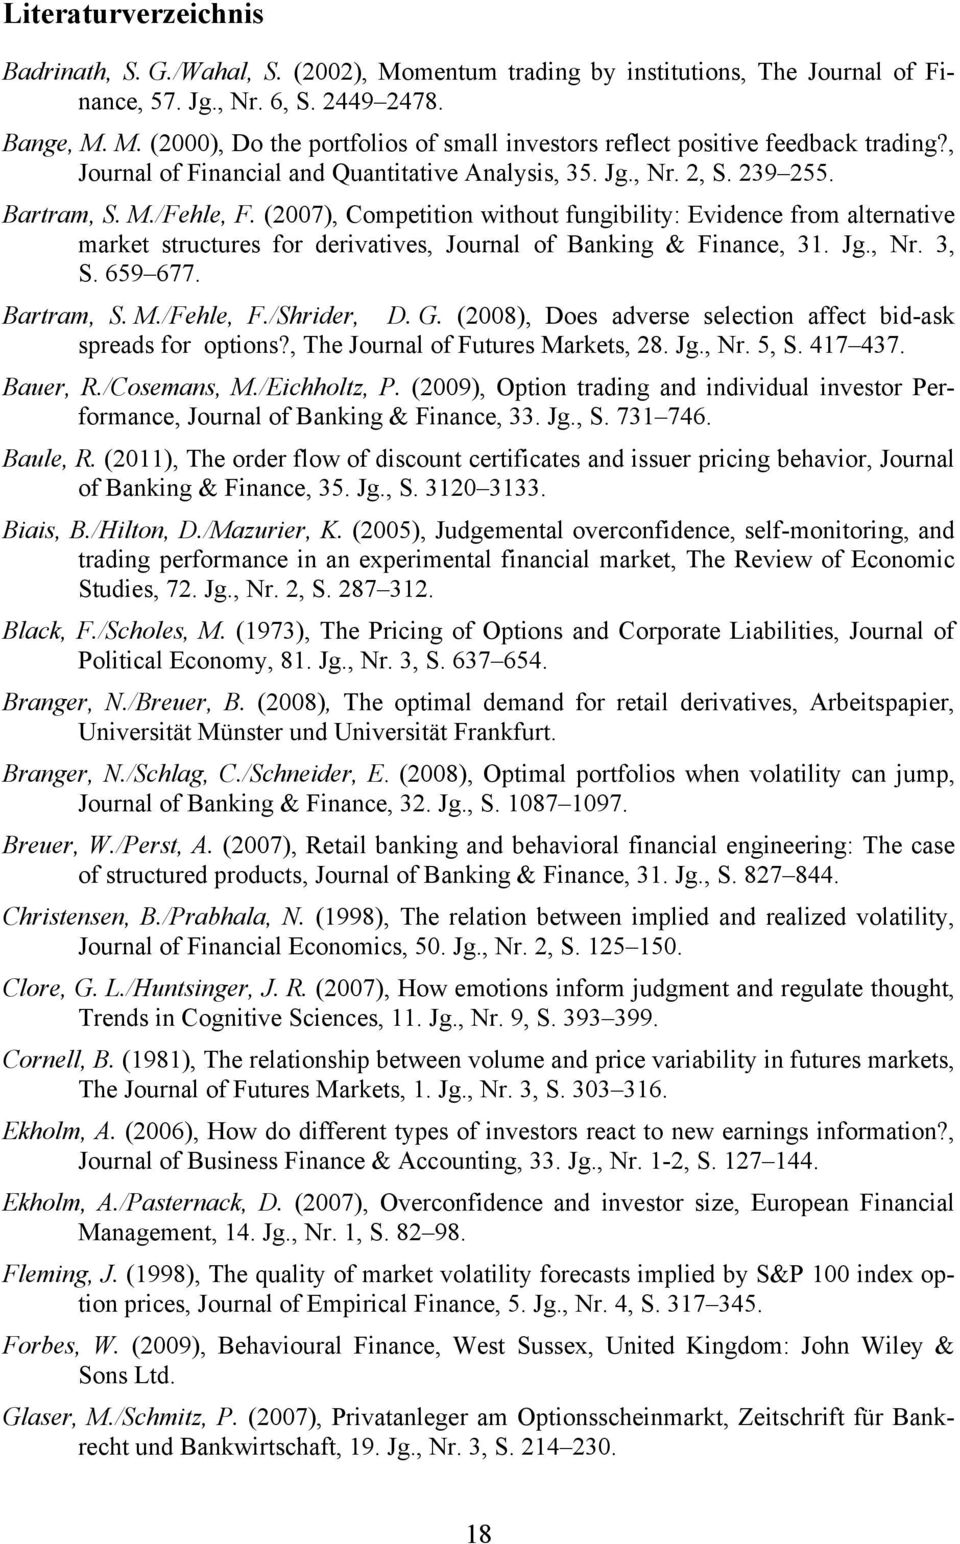 (2007), Competition without fungibility: Evidence from alternative market structures for derivatives, Journal of Banking & Finance, 31. Jg., Nr. 3, S. 659 677. Bartram, S. M./Fehle, F./Shrider, D. G.